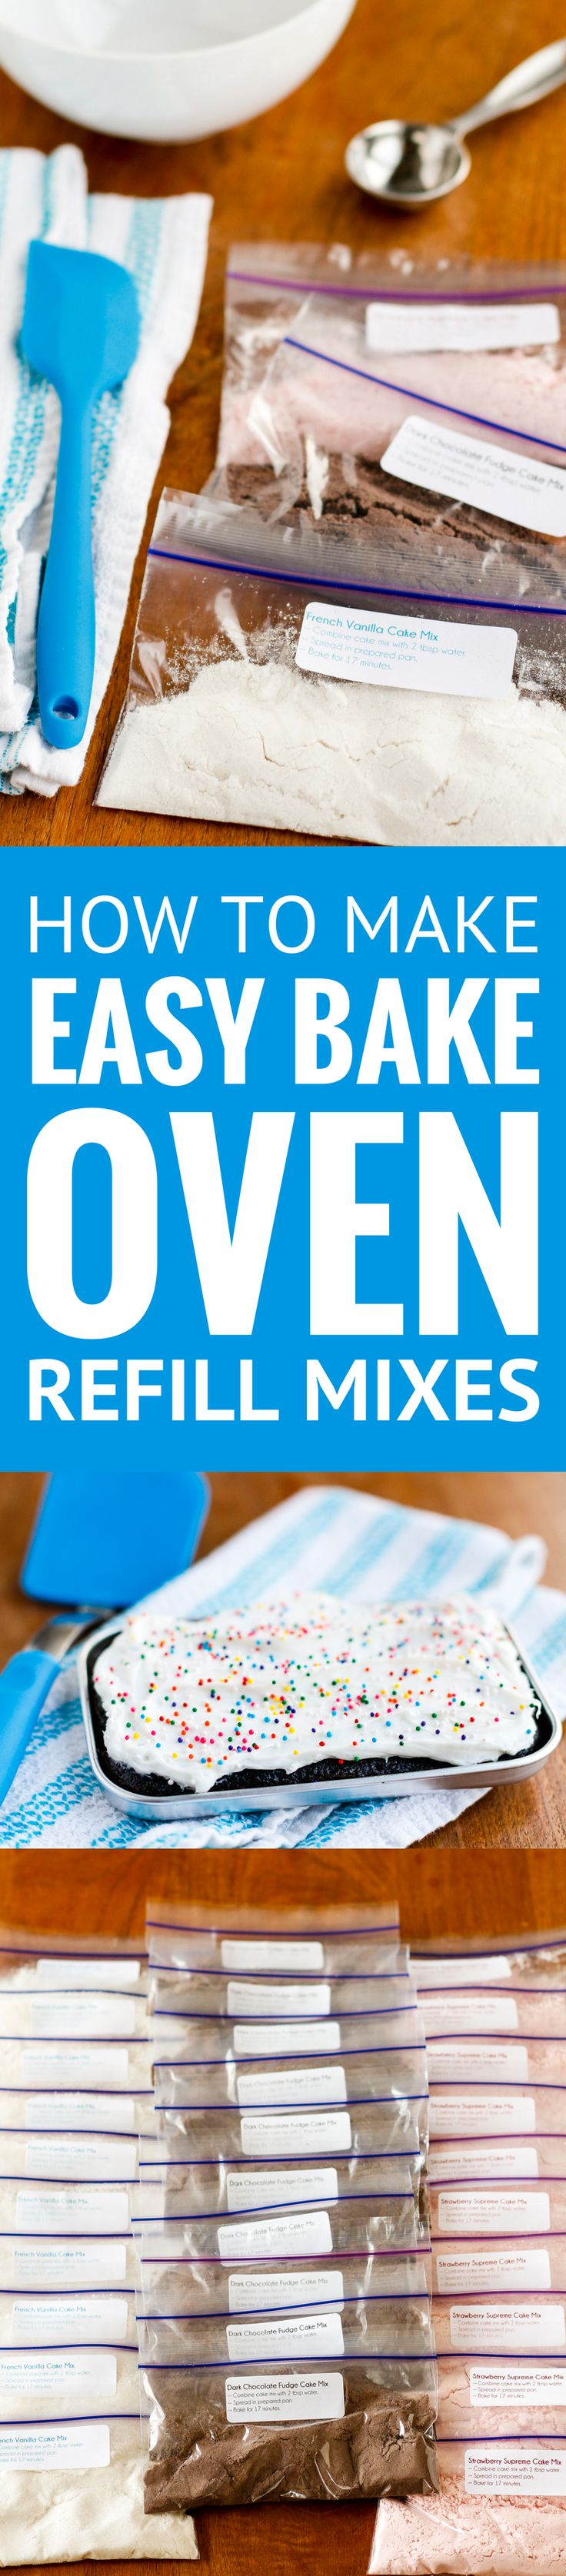 How To Make Easy Bake Oven Mixes -- learn how to make your own Easy Bake Oven refills from boxed cake mixes, yields 33 refills for under $4!!! If you have kids that love to bake with their Easy Bake Oven, you NEED to read this now... | easy bake oven mixes diy | easy bake oven mixes recipes | easy bake oven mixes homemade | easy bake oven homemade mixes | easy bake oven recipes | easy bake oven recipes diy | find the tutorial on unsophisticook.com